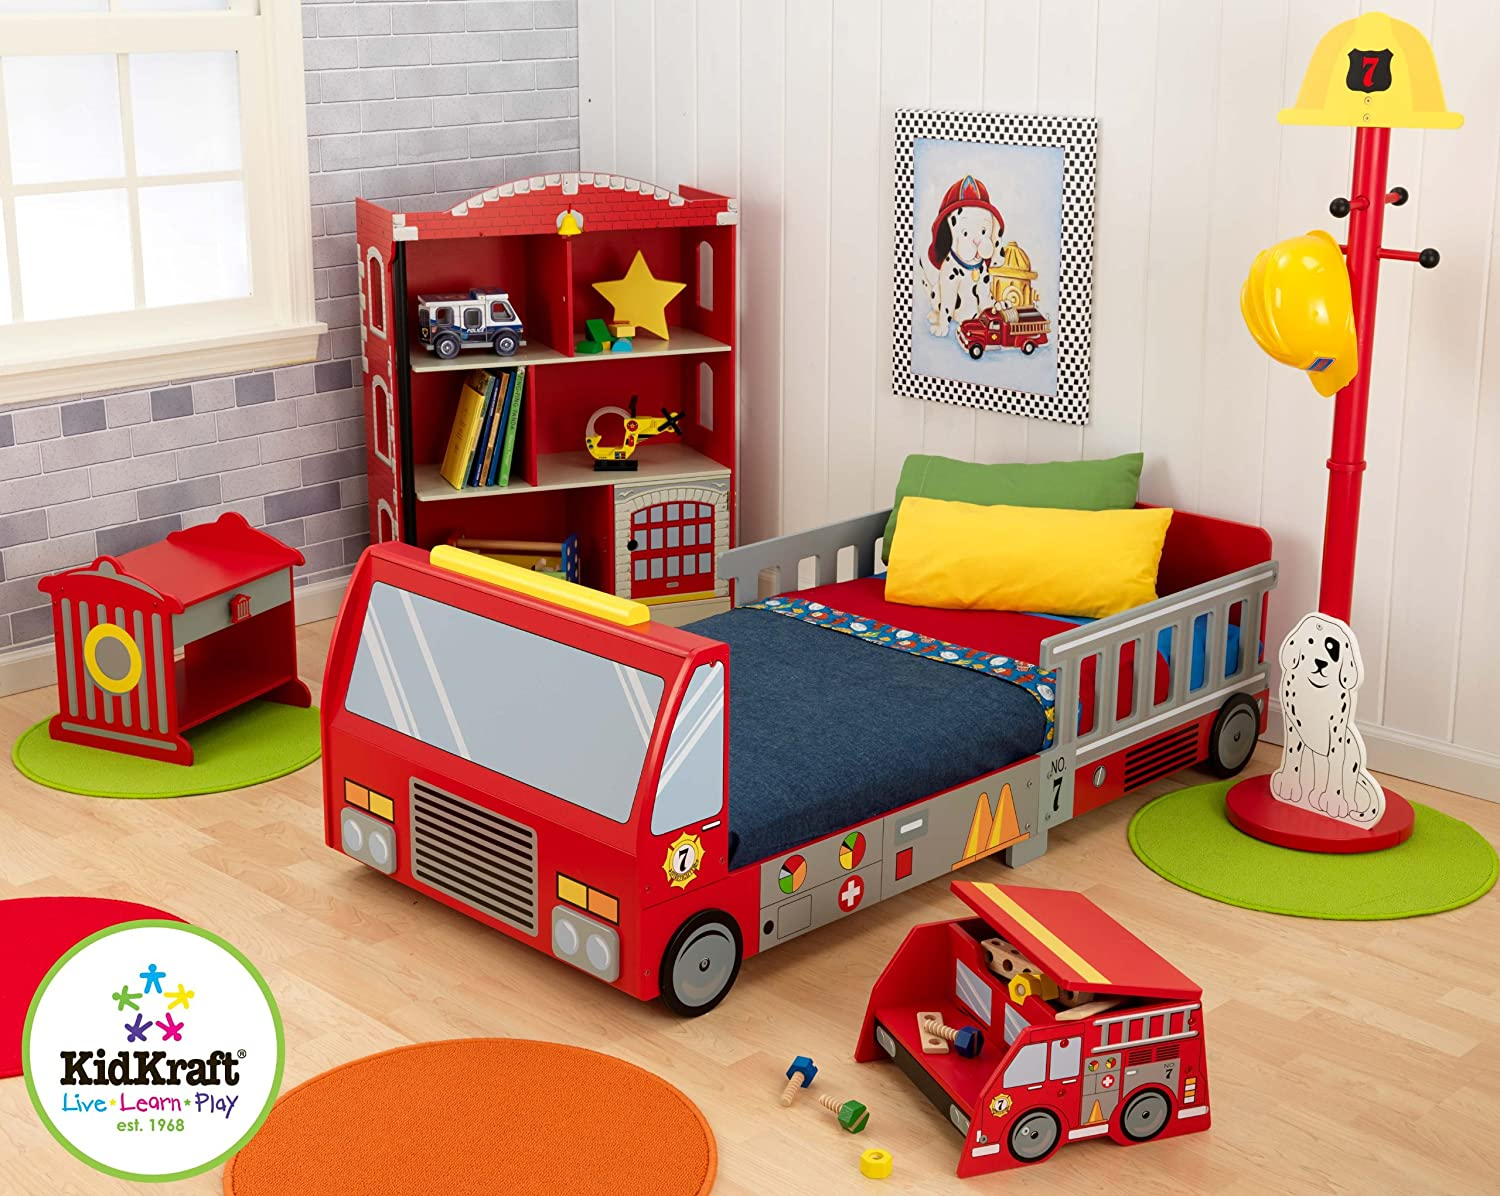 Baby jeep bed - Kidkraft Fire Truck Toddler Bed